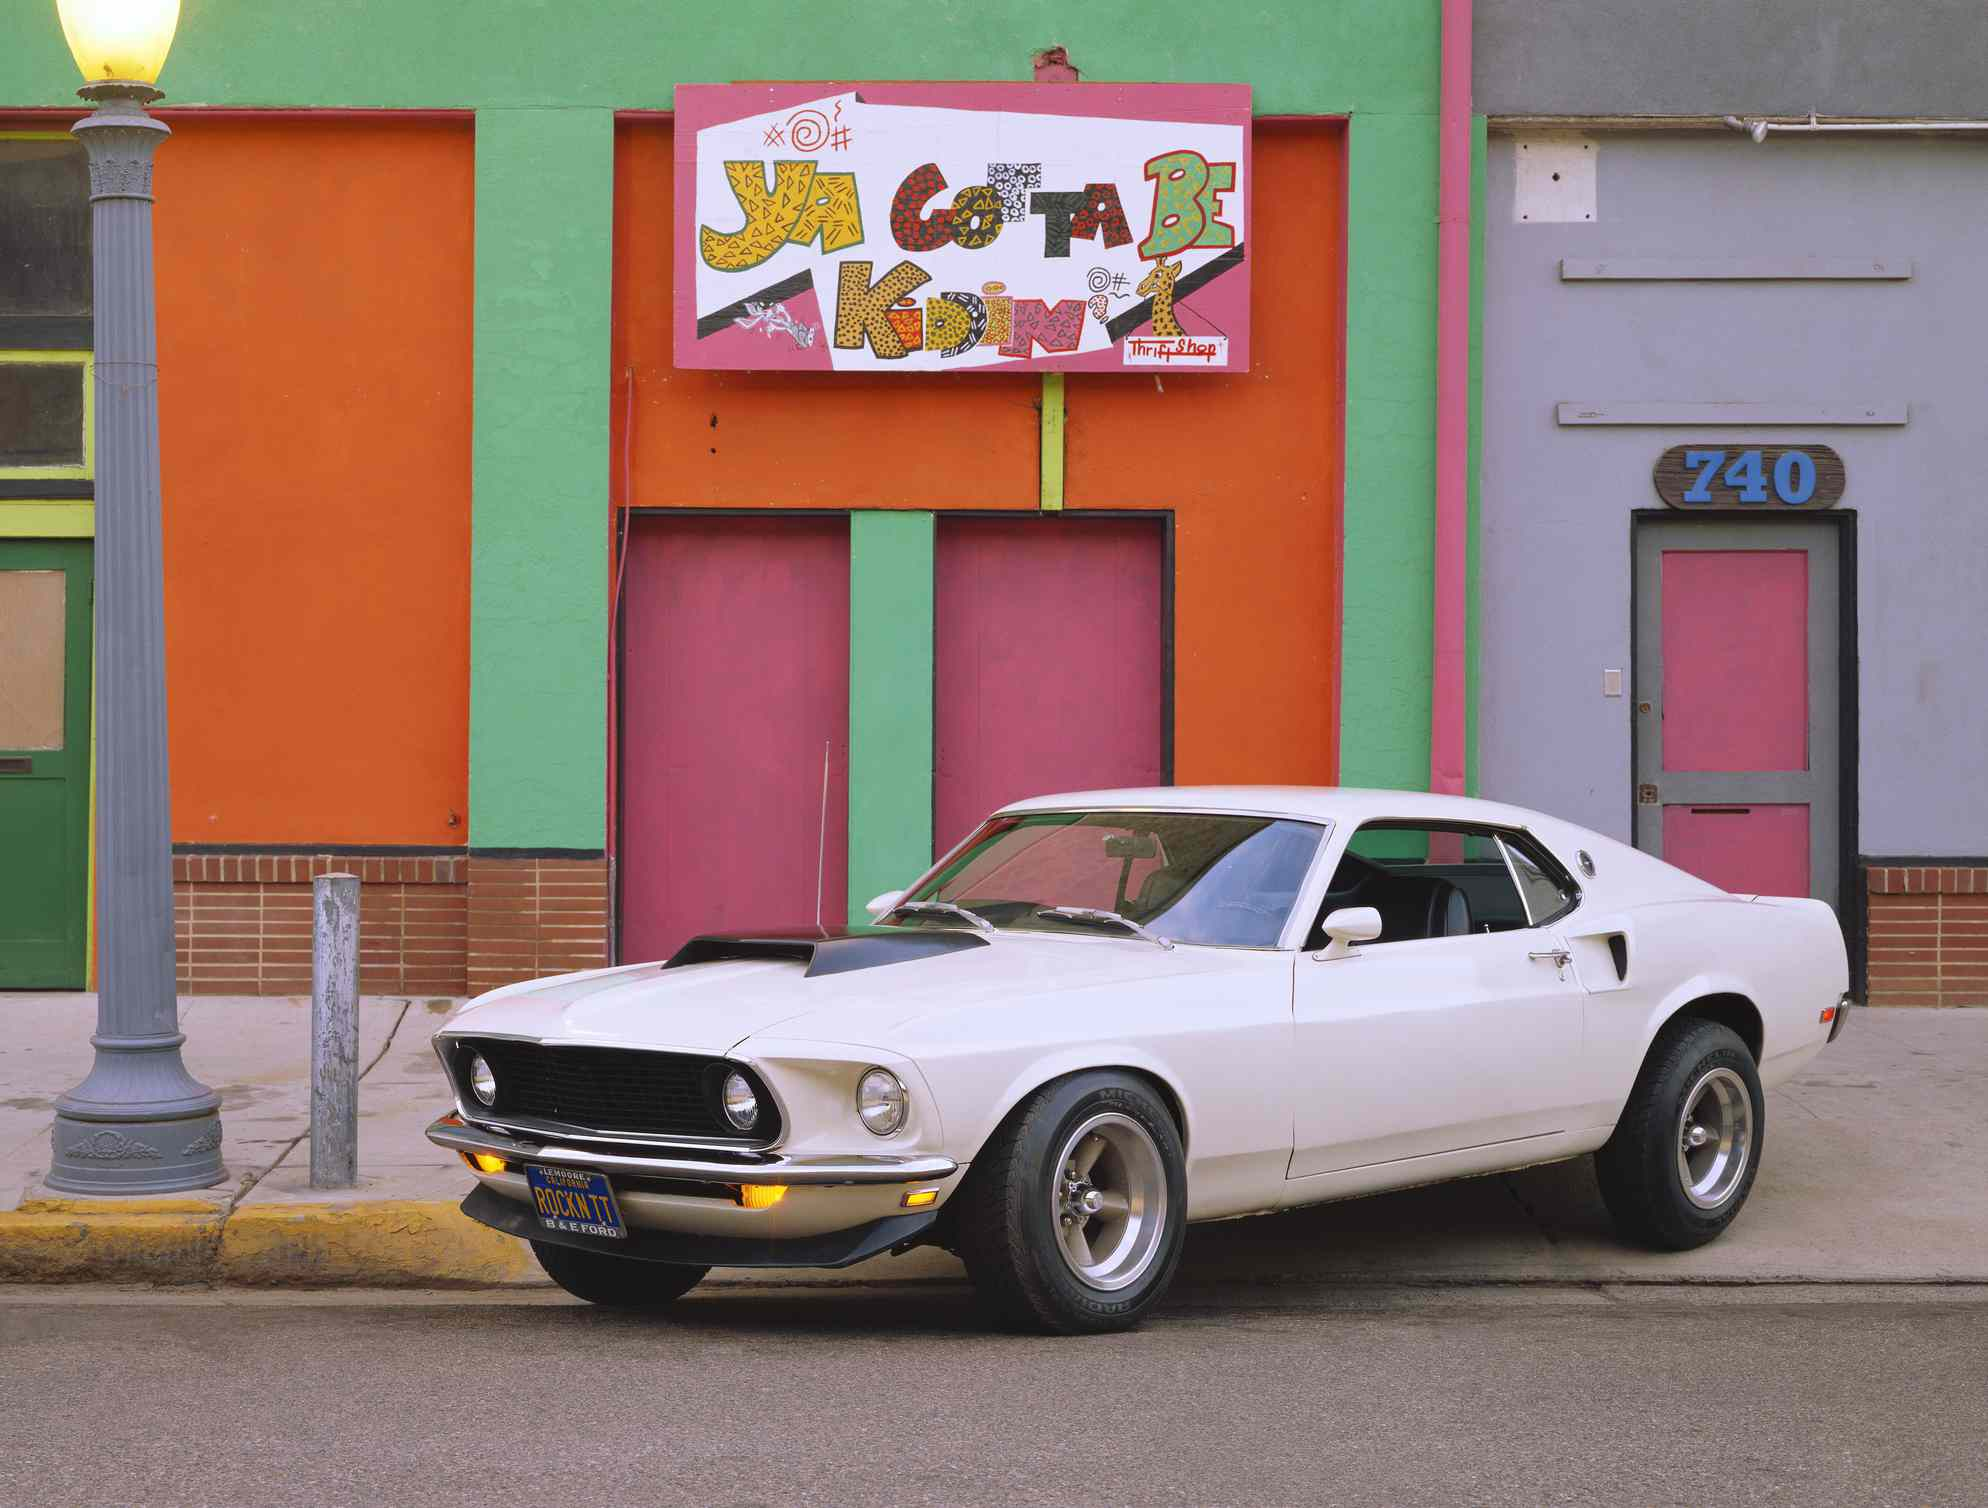 The 10 Best Mustangs Of All Time 1969 Ford Mustang Mach 1 Shaker Scoop Boss 429